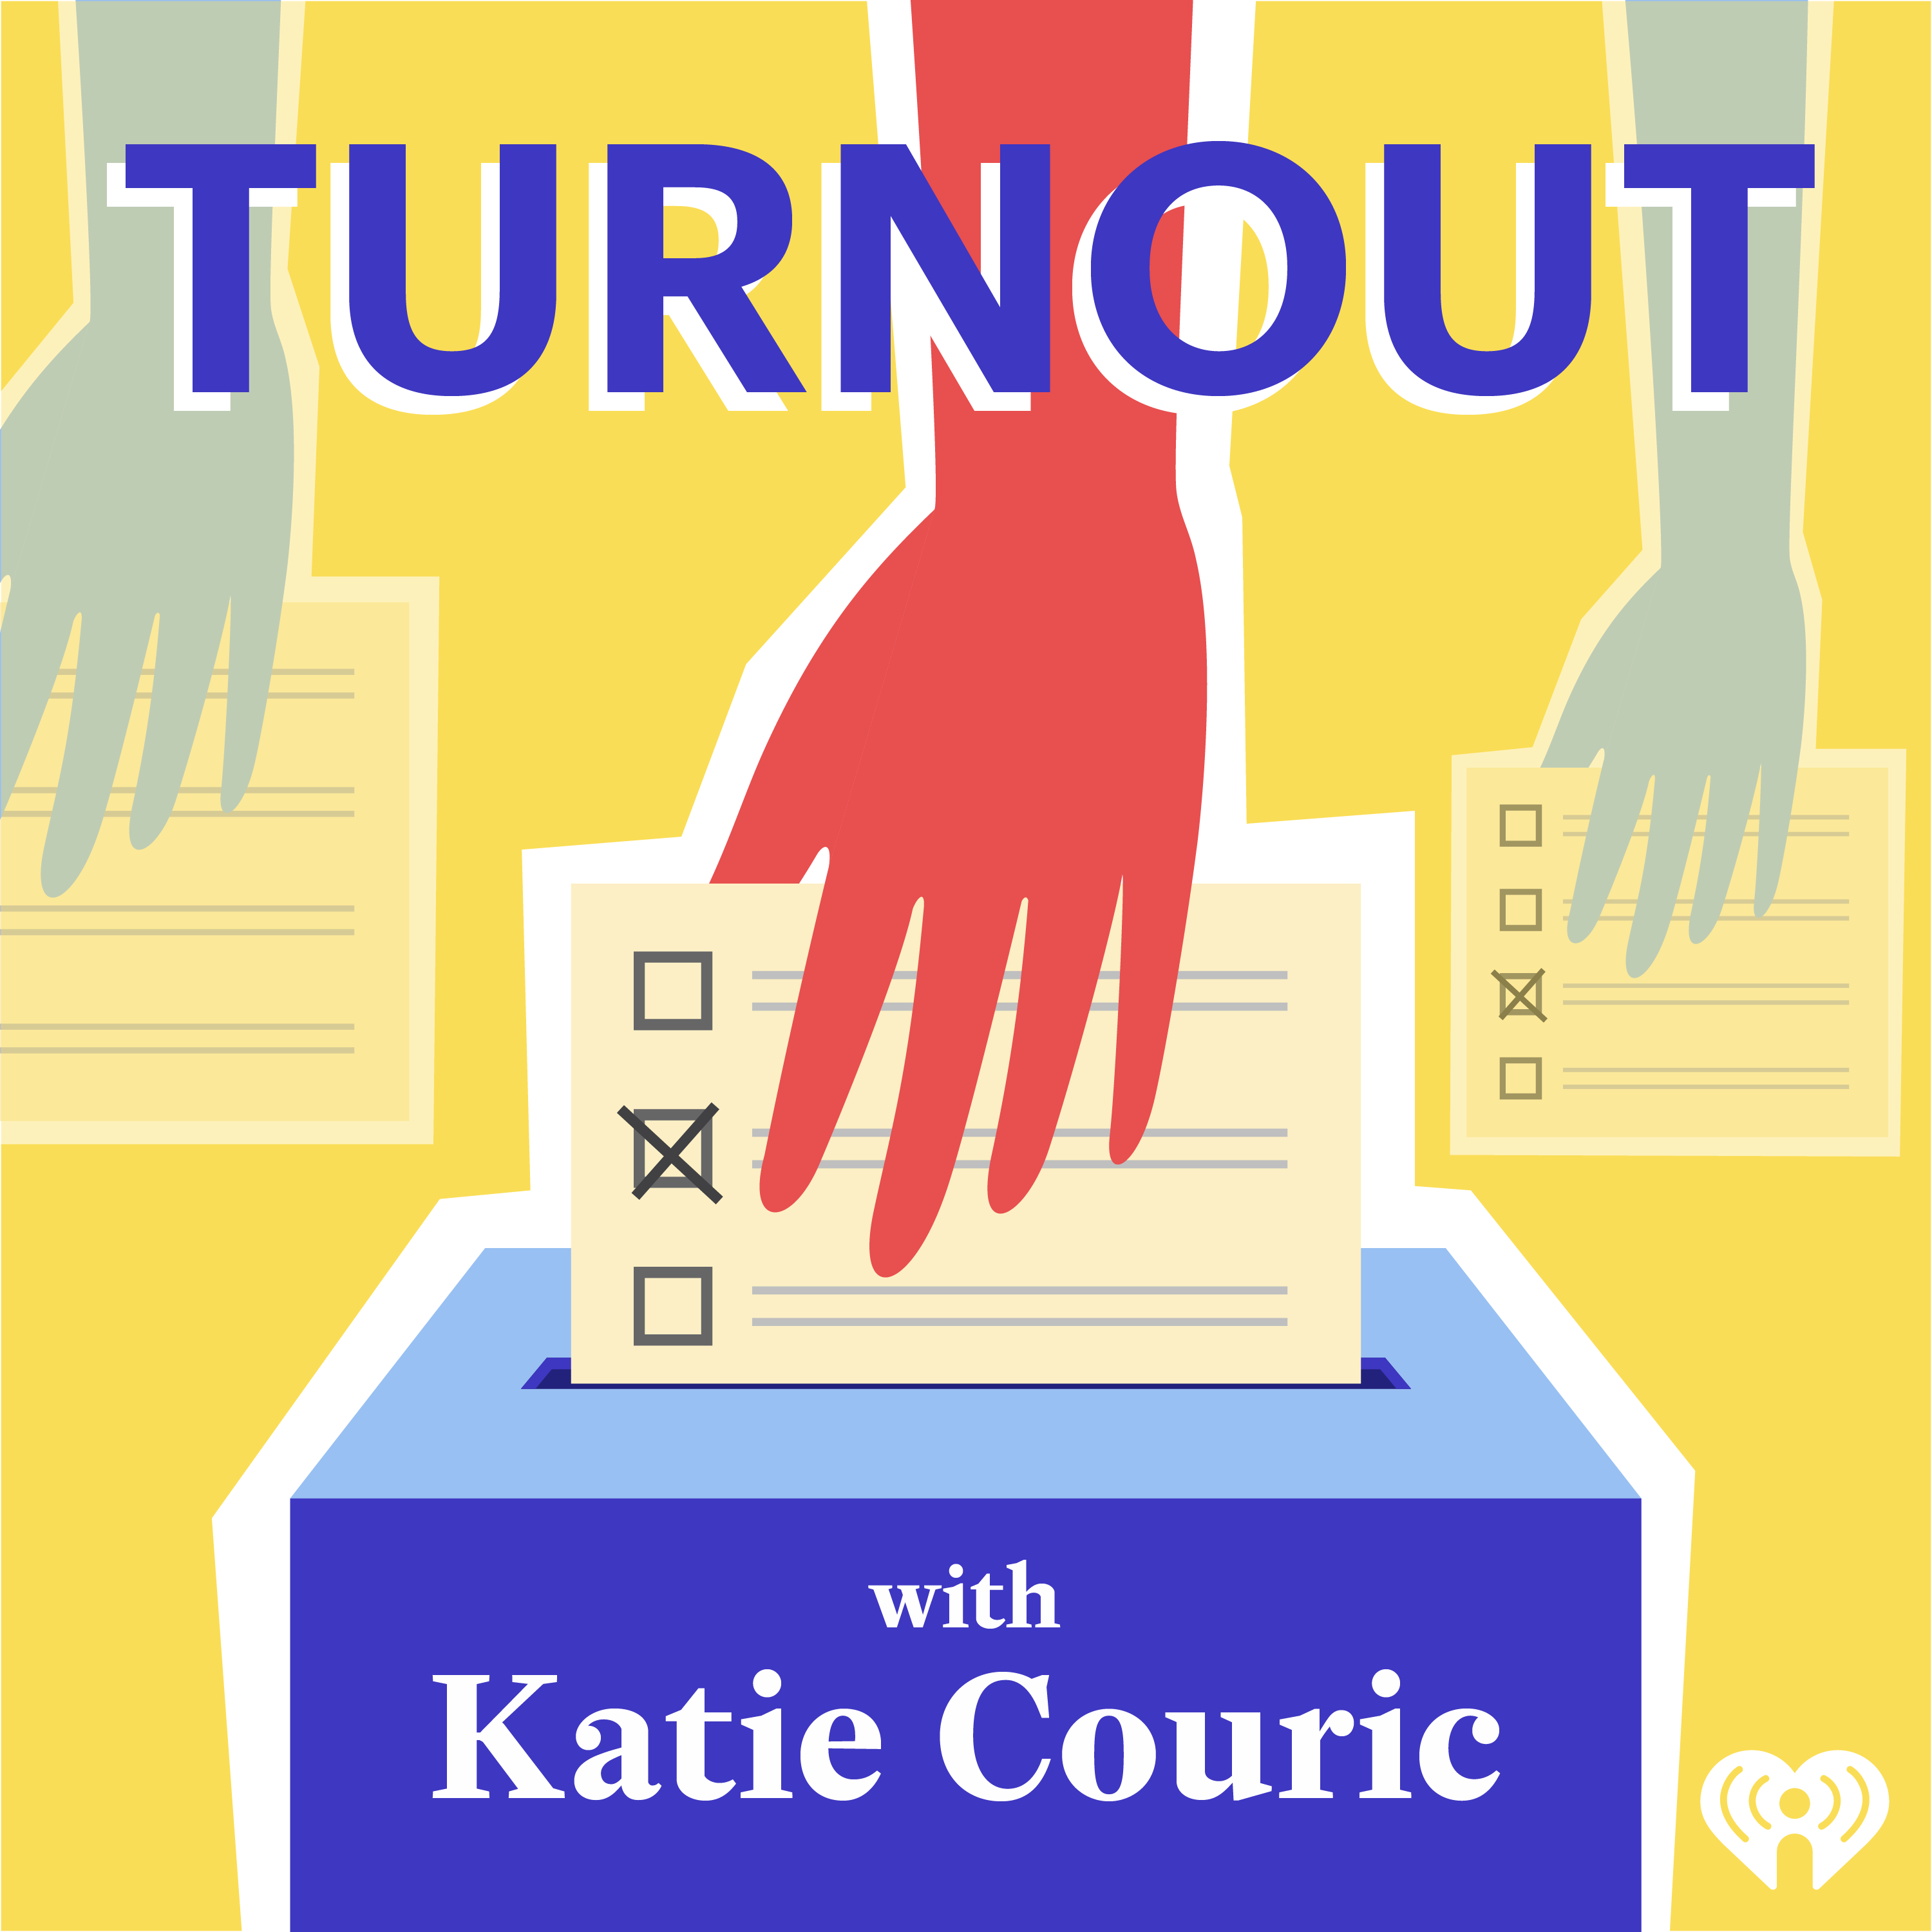 Episode 6: 'There's going to be some soul searching in both parties'